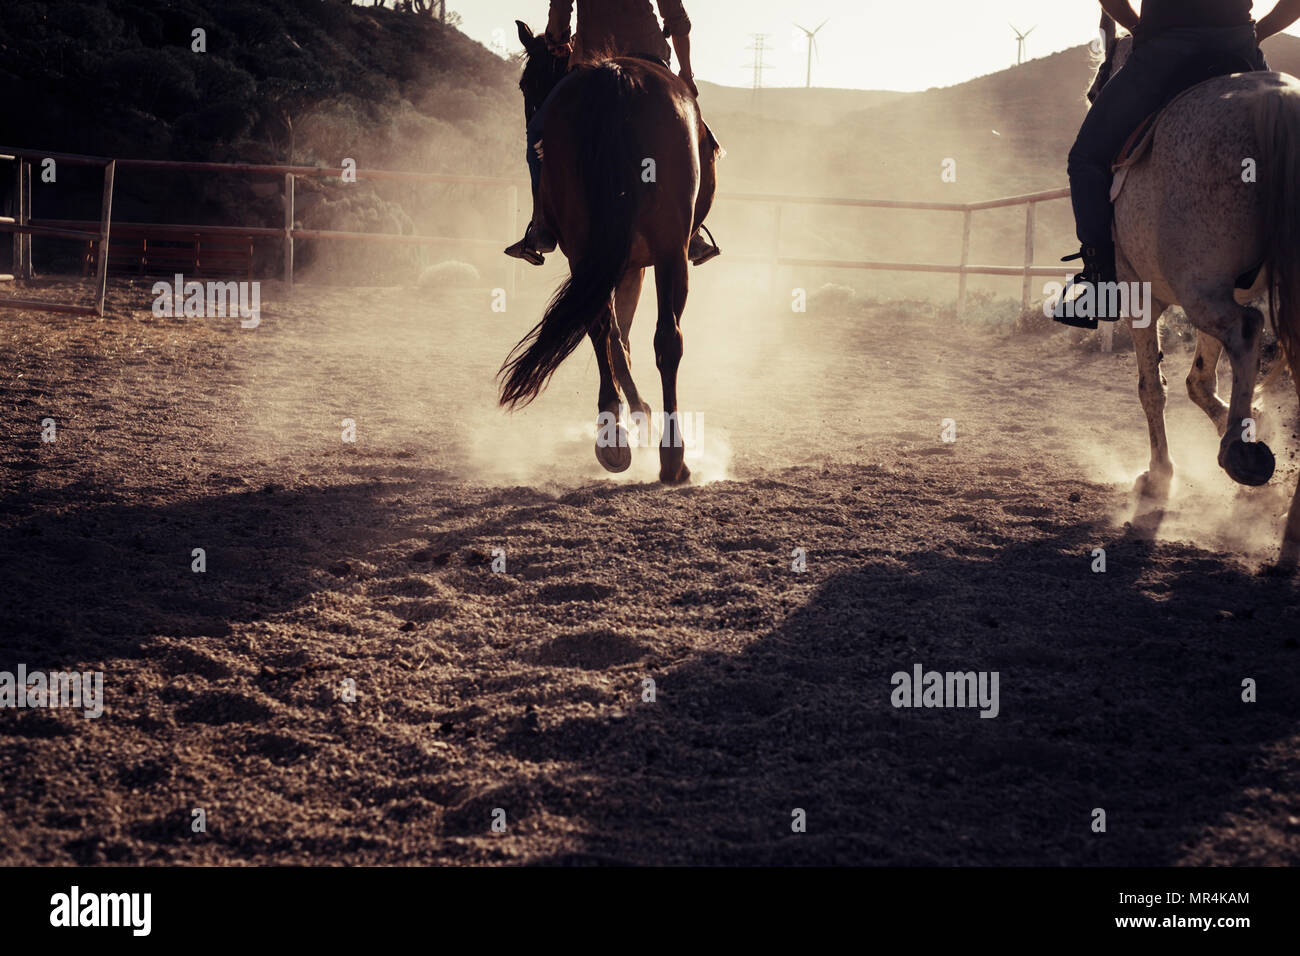 two horses run and ride in the backlight making dust on the ground. sunny day and wind mill on the background for emotional pictures. countryside plac - Stock Image